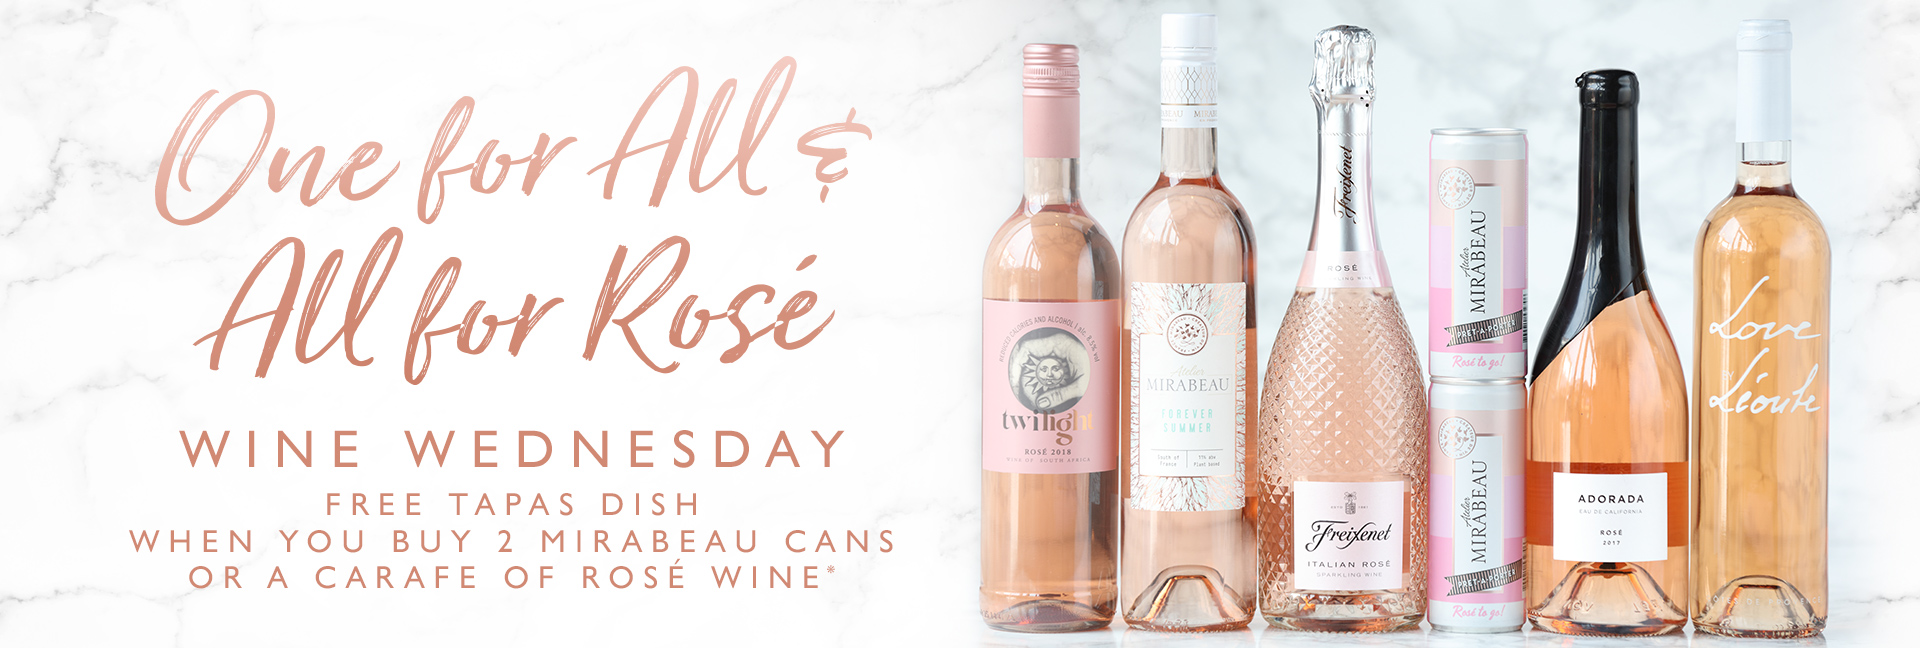 Wine Wednesday at All Bar One Liverpool